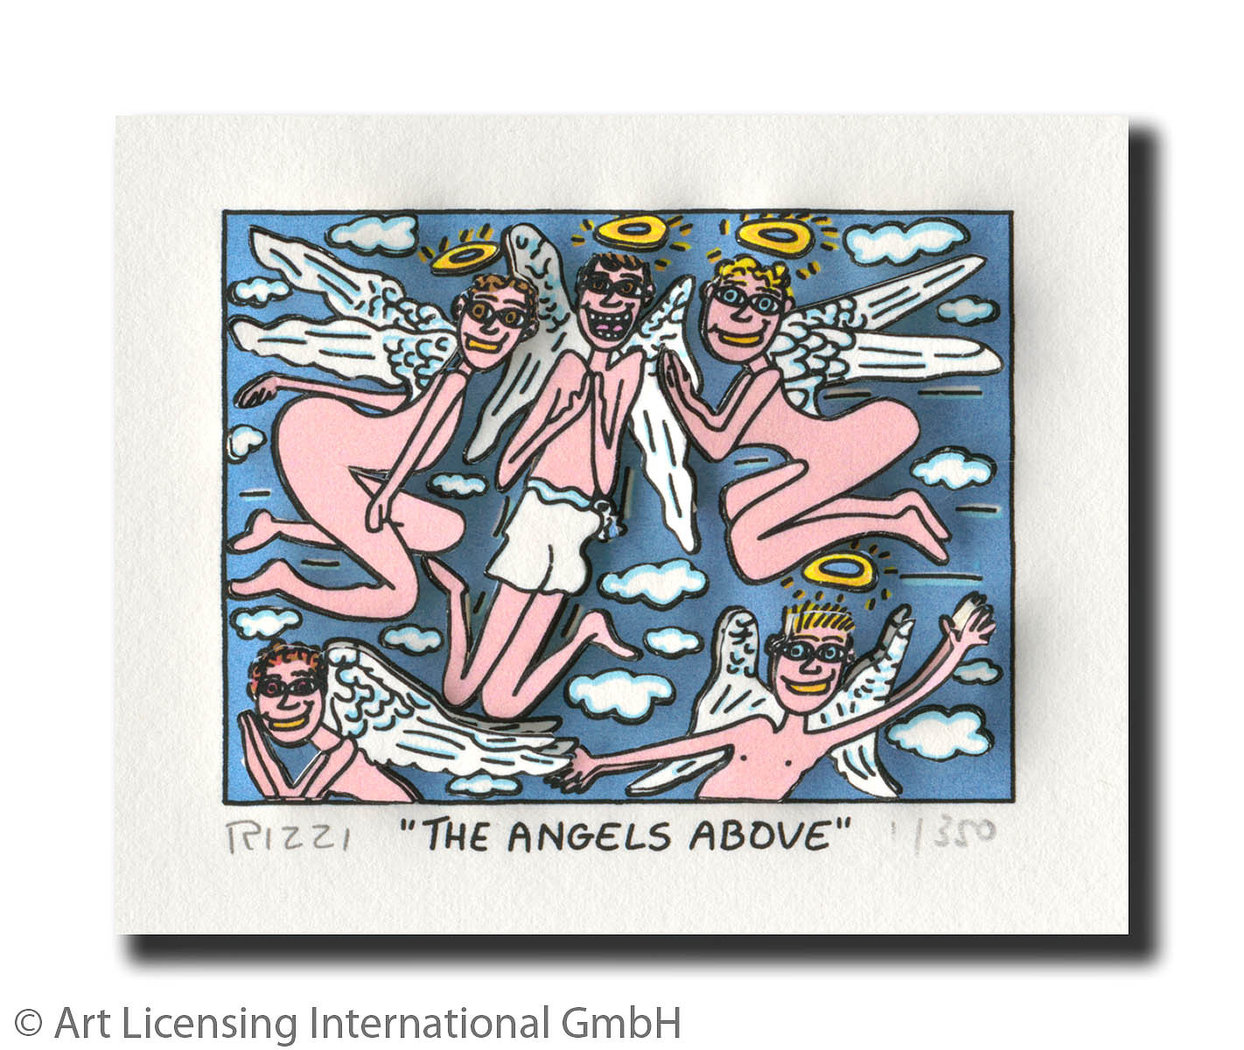 James Rizzi - THE ANGELS ABOVE